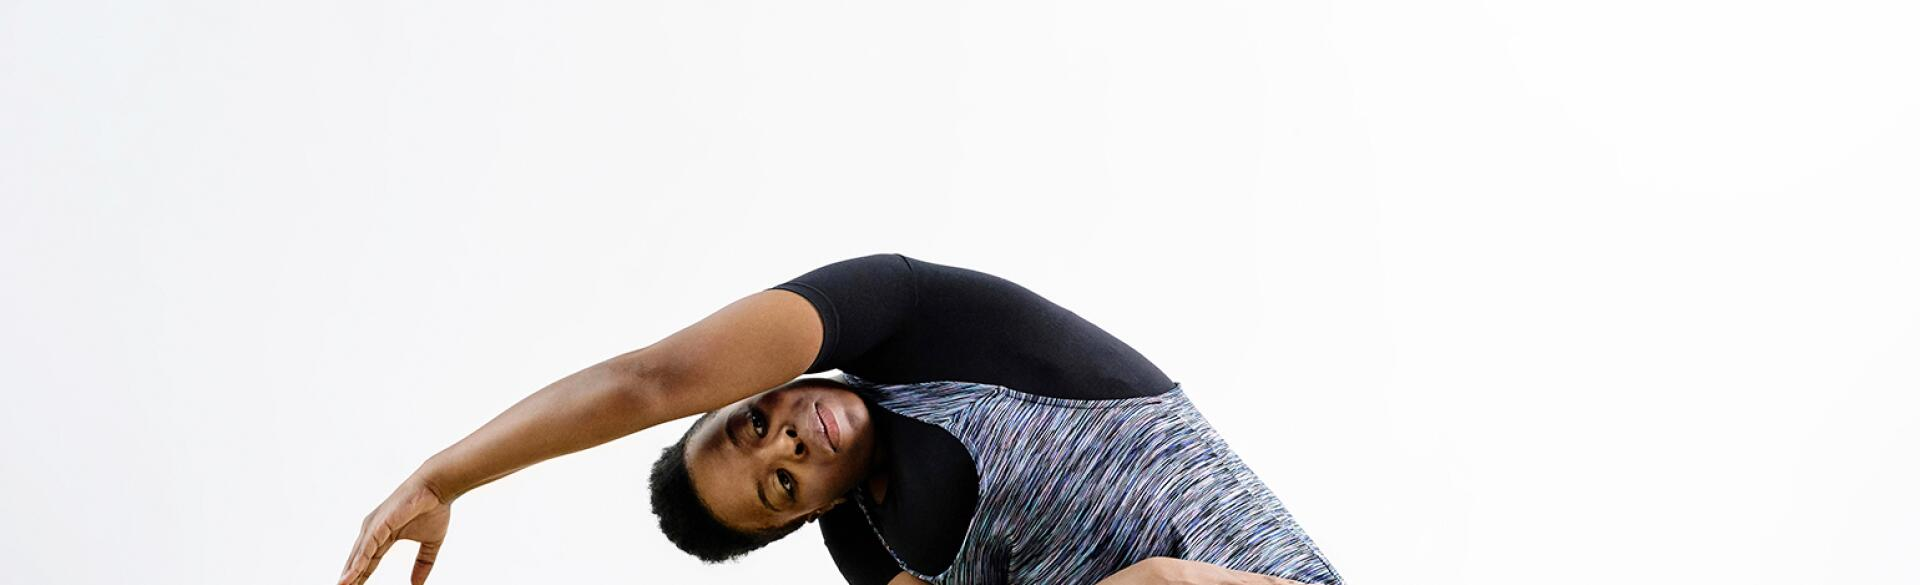 A photo of woman bent to her right side in a yoga pose, while sitting on a yoga mat.